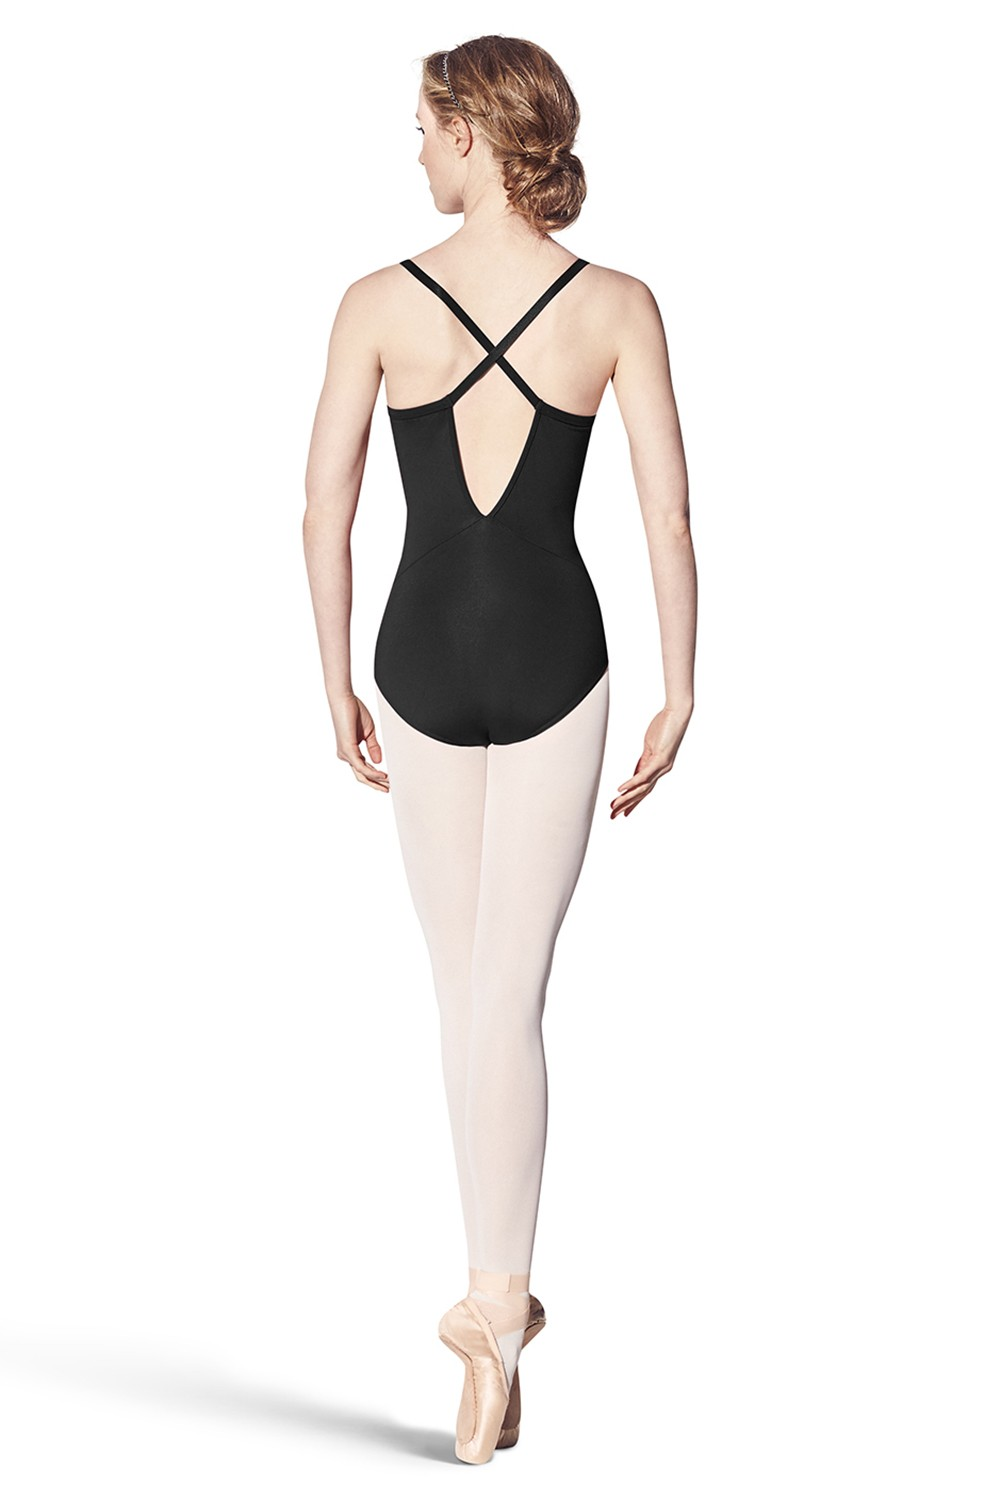 Padget Women's Dance Leotards